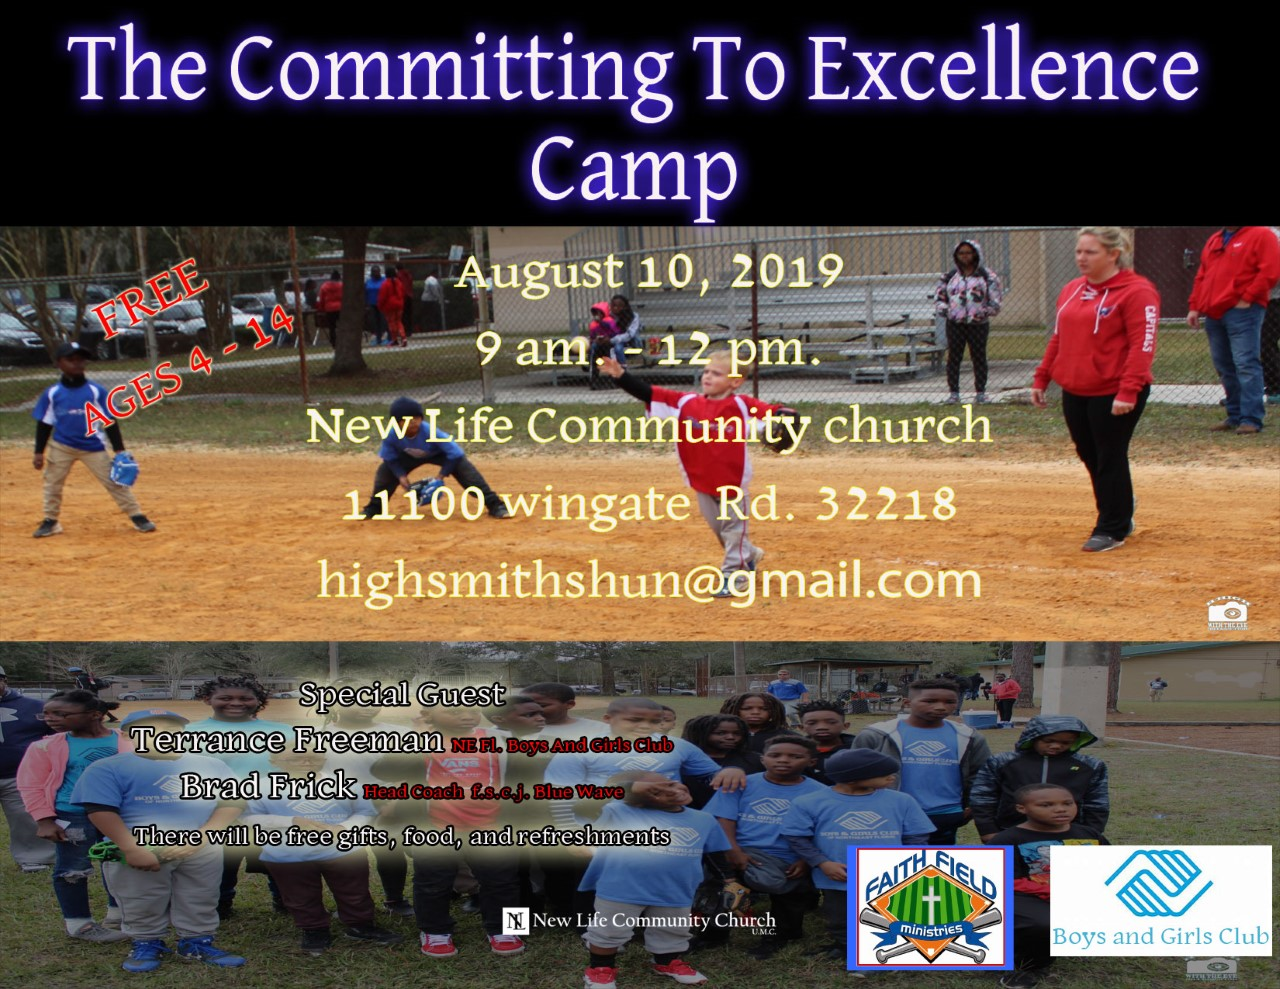 The Committing to Excellence Camp